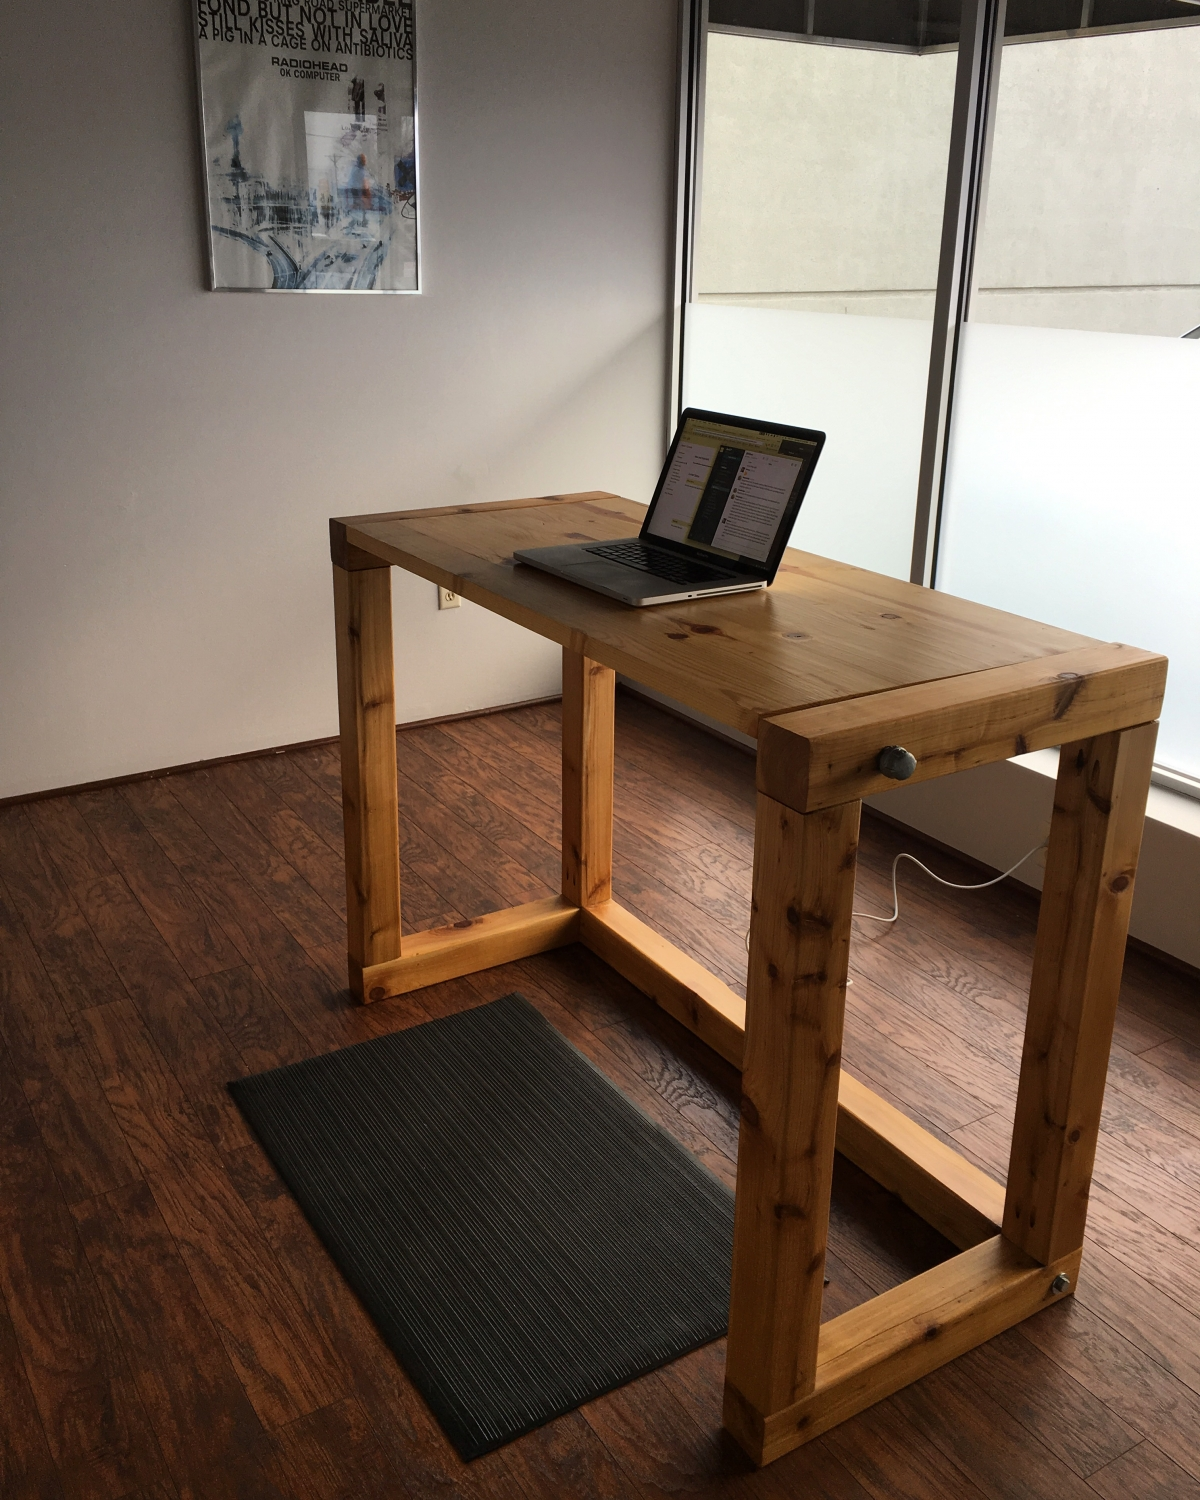 Barrett Morgan Design Office with standing desk